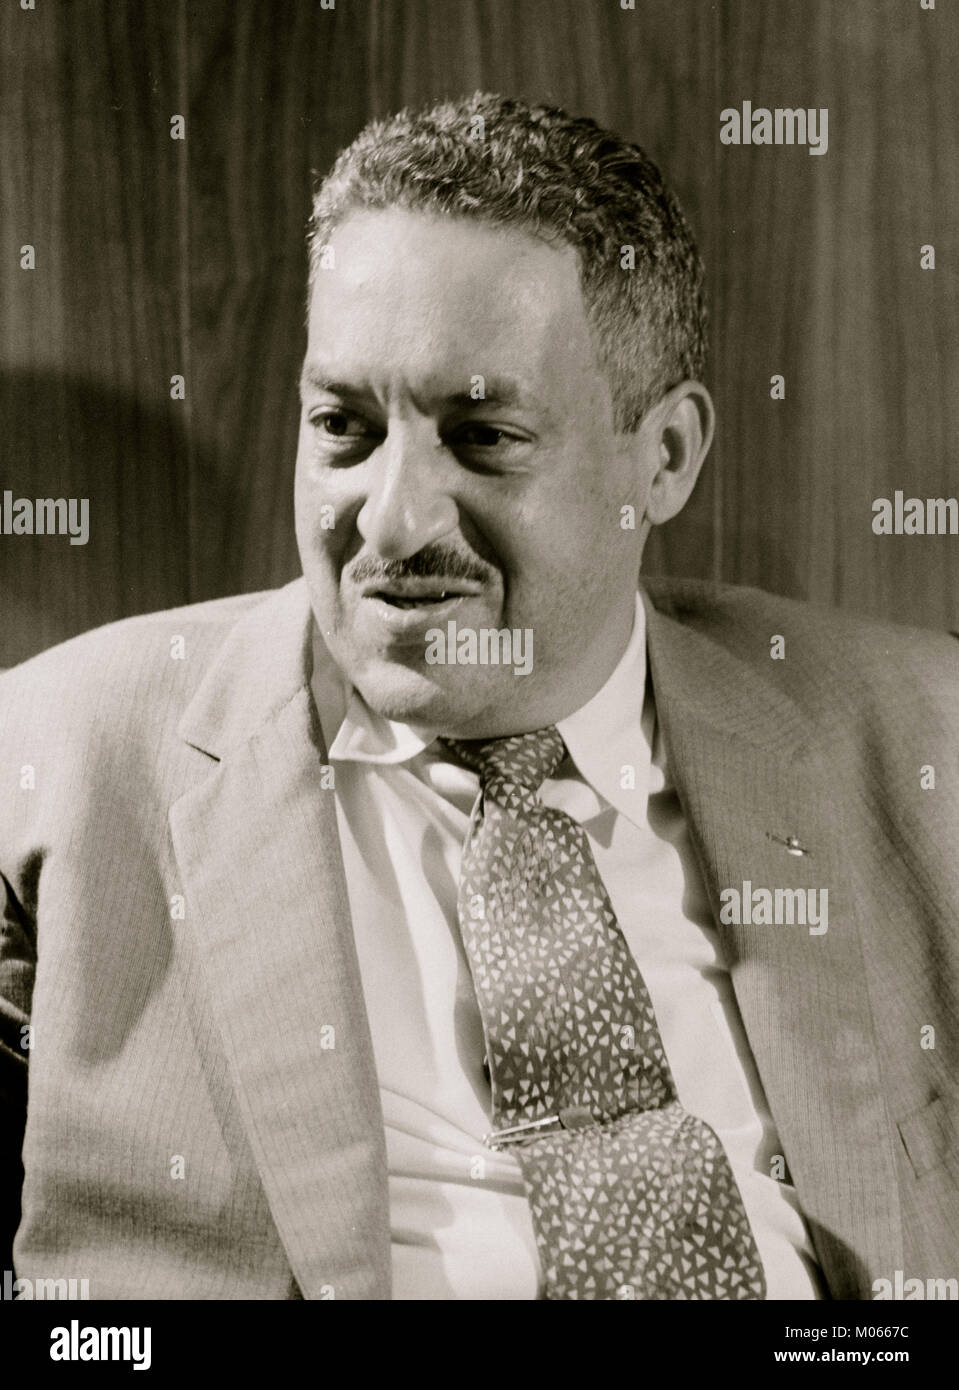 Thurgood Marshall, attorney for the NAACP - Stock Image